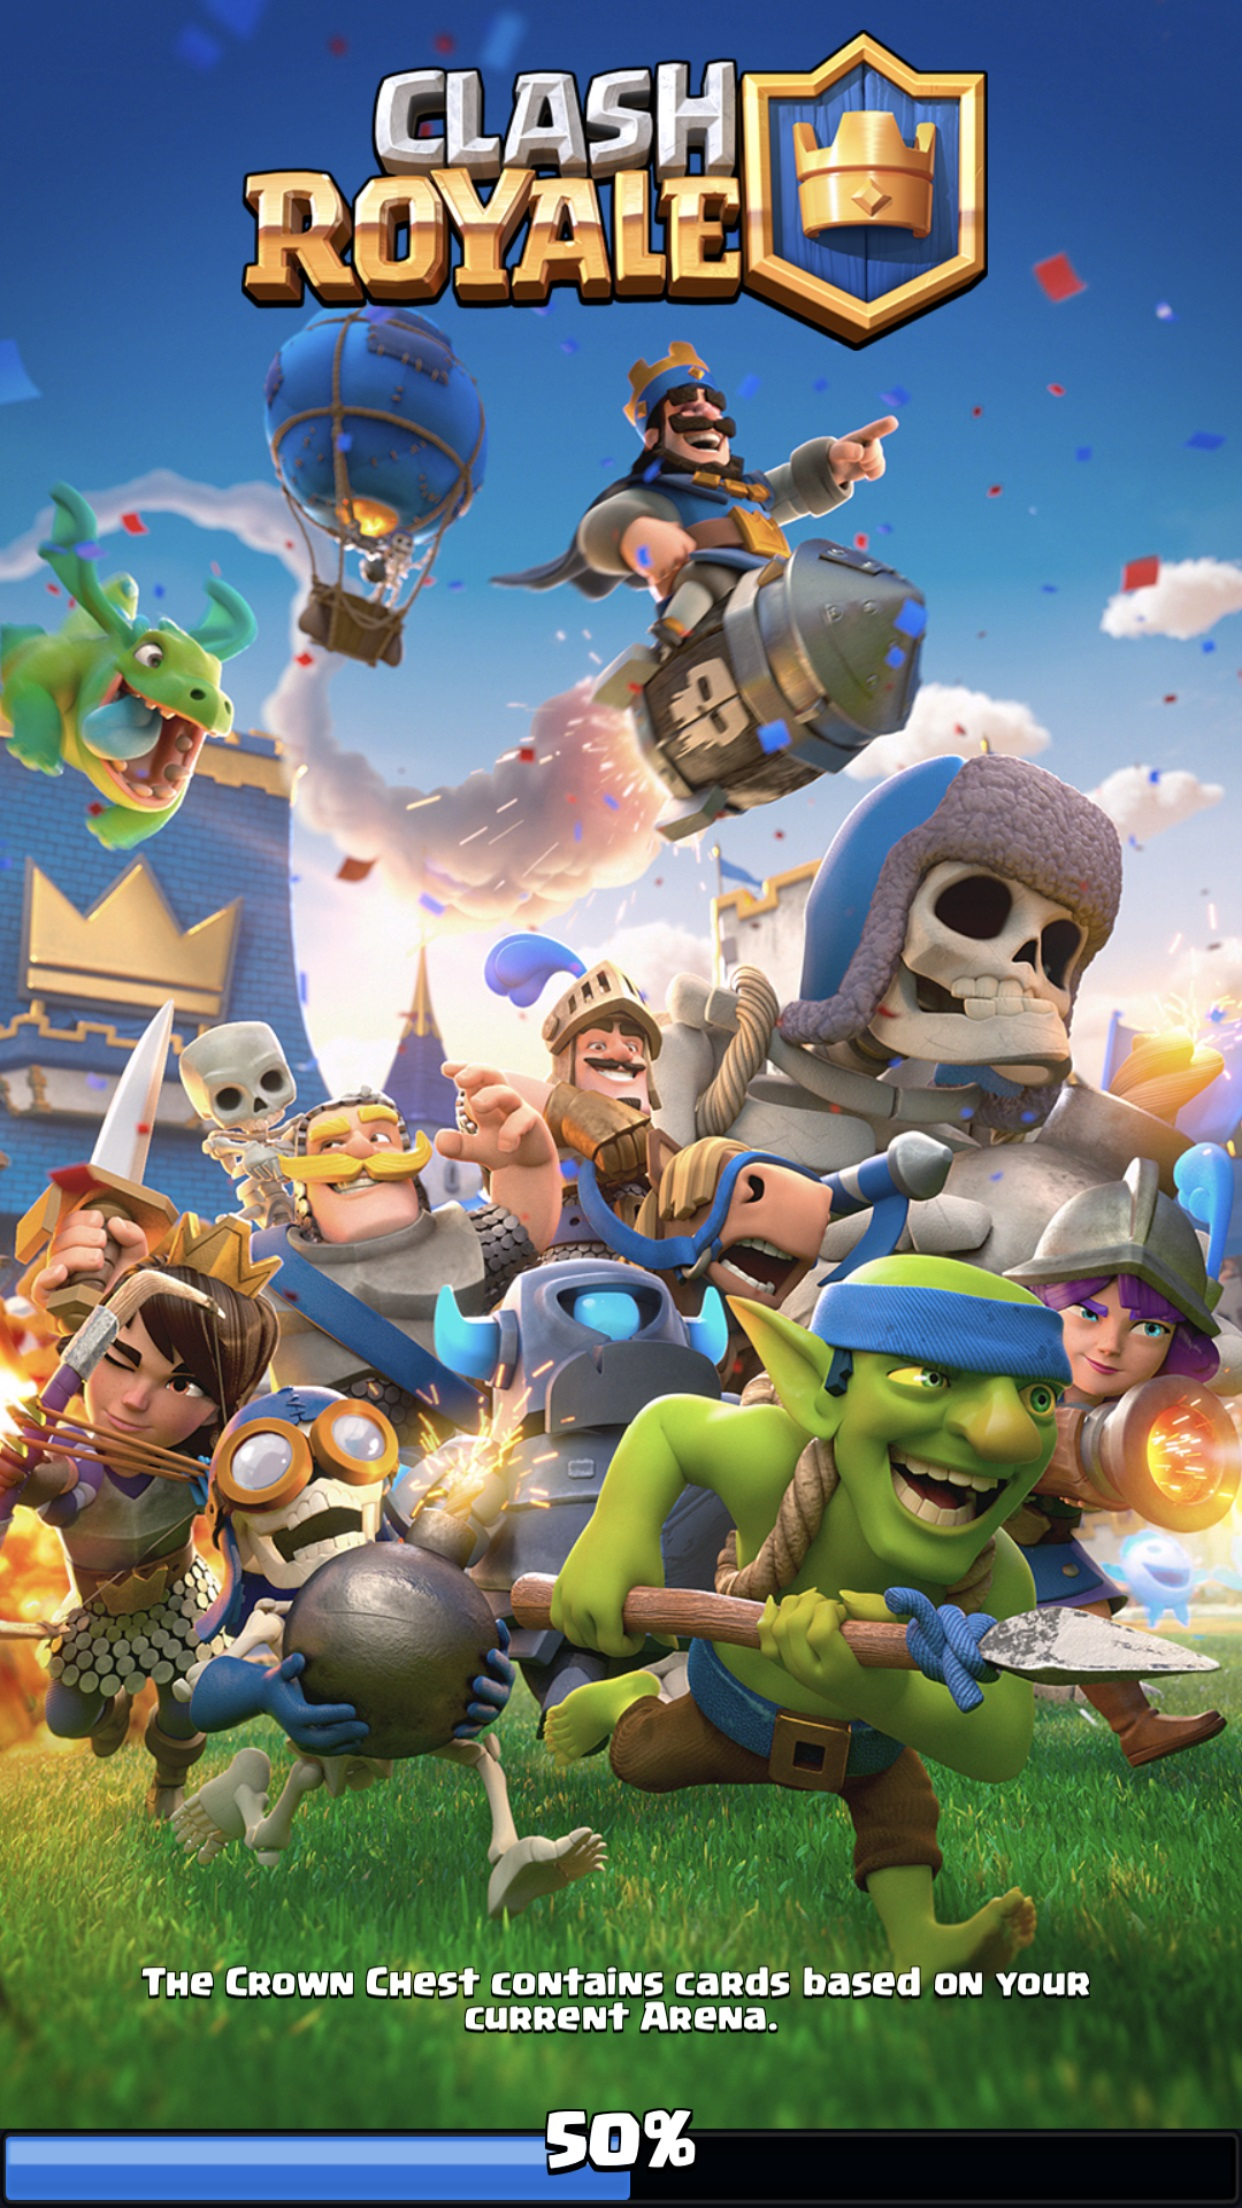 Clash-Royale-2.0-new-screen